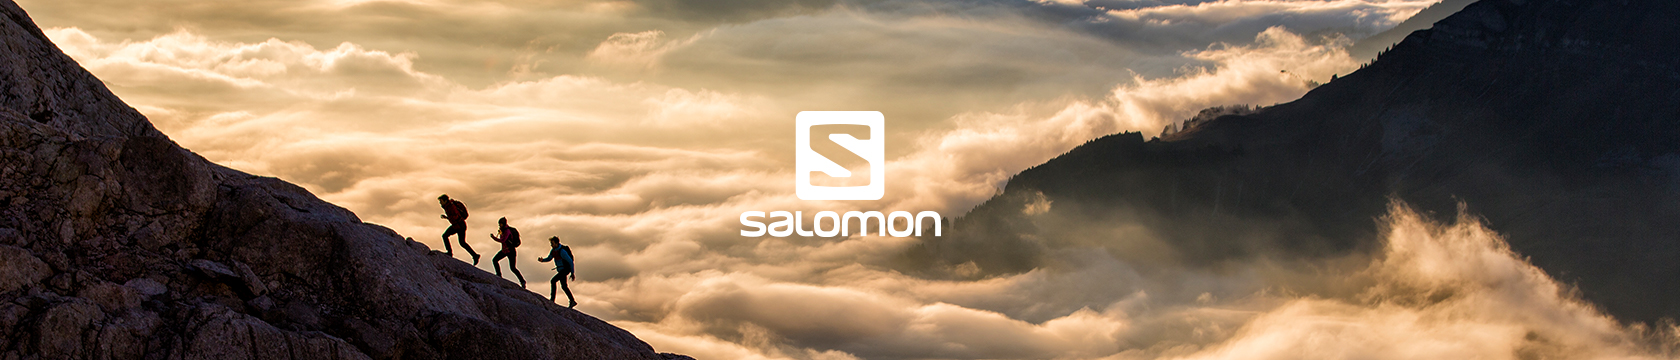 Men hiking between mountain peaks wearing Salomon Apparel.